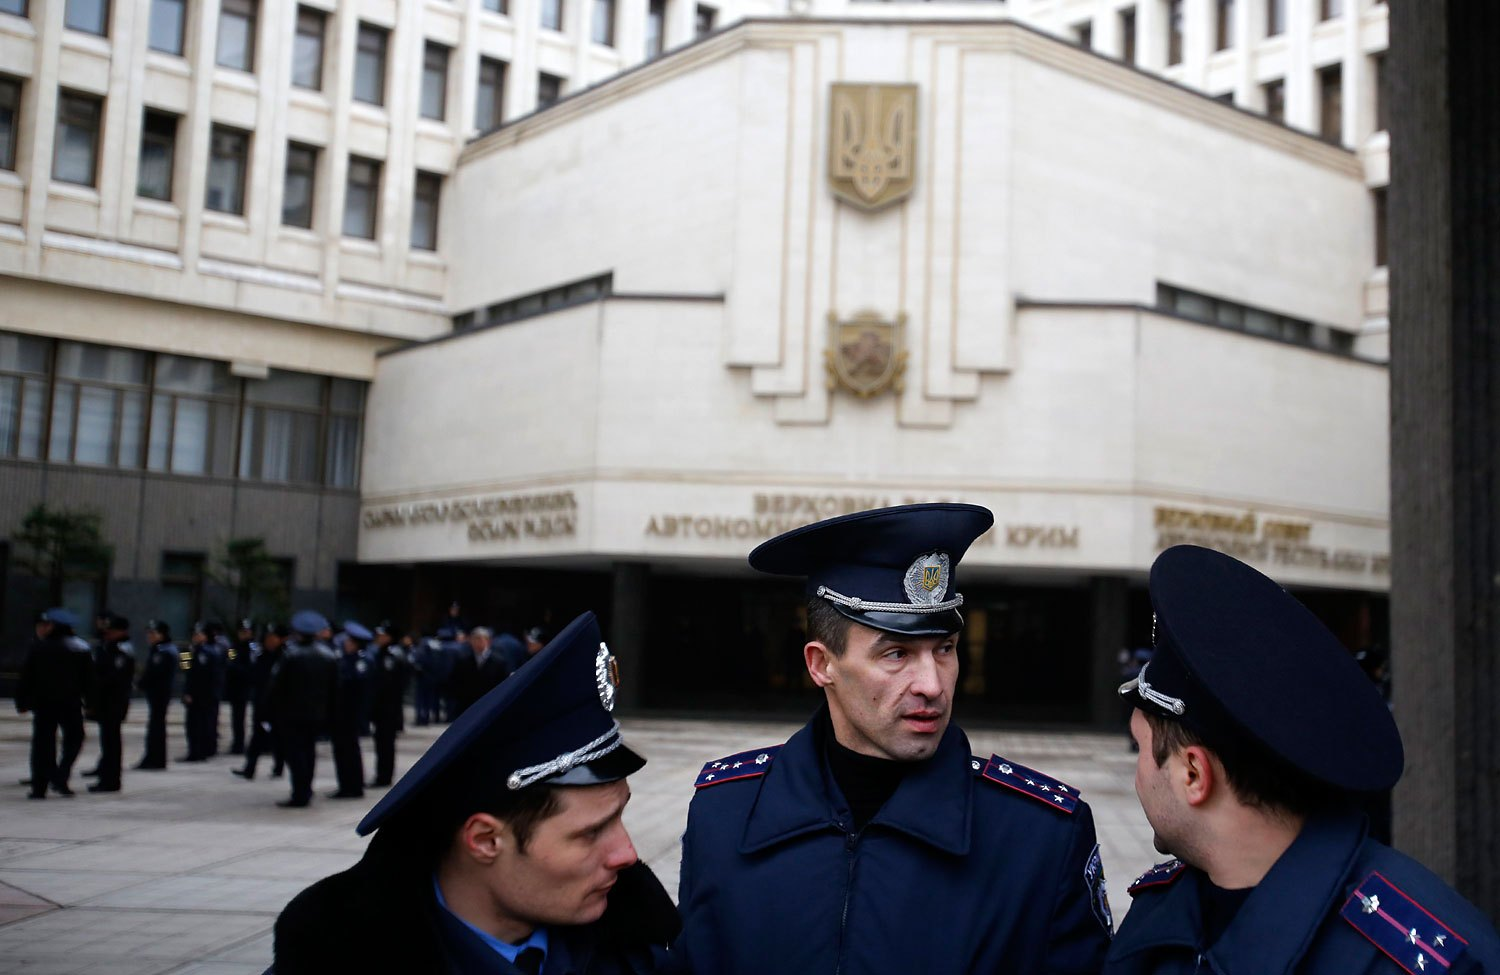 Ukrainian police officers guard local government building during a protest in Simferopol, Feb. 26, 2014.